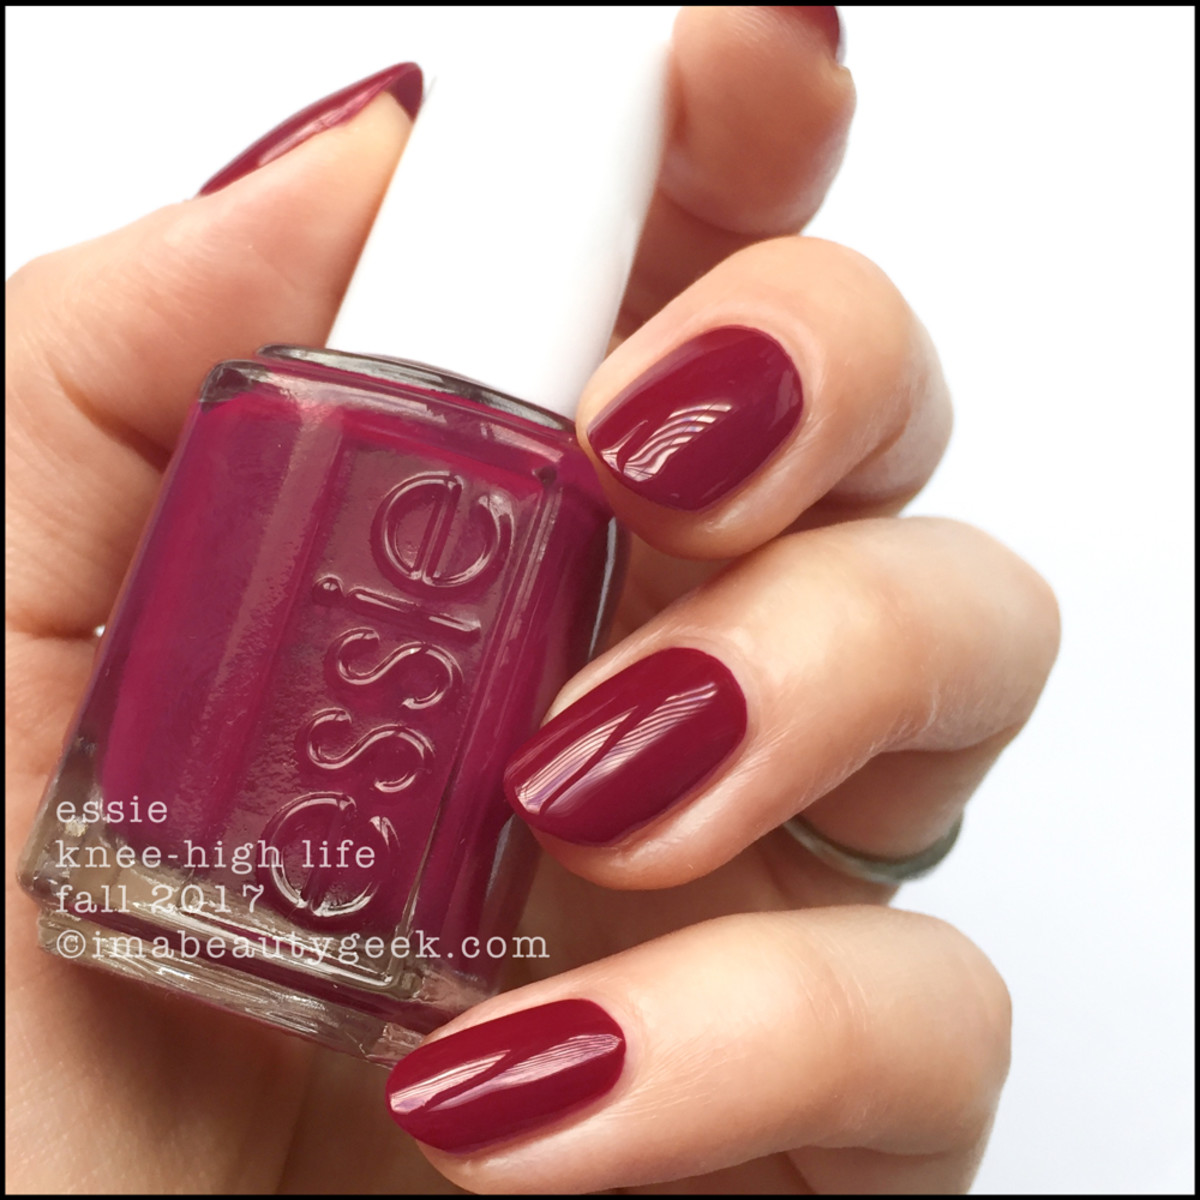 Essie Knee-High Life - Essie Fall 2017 Collection Swatches Review